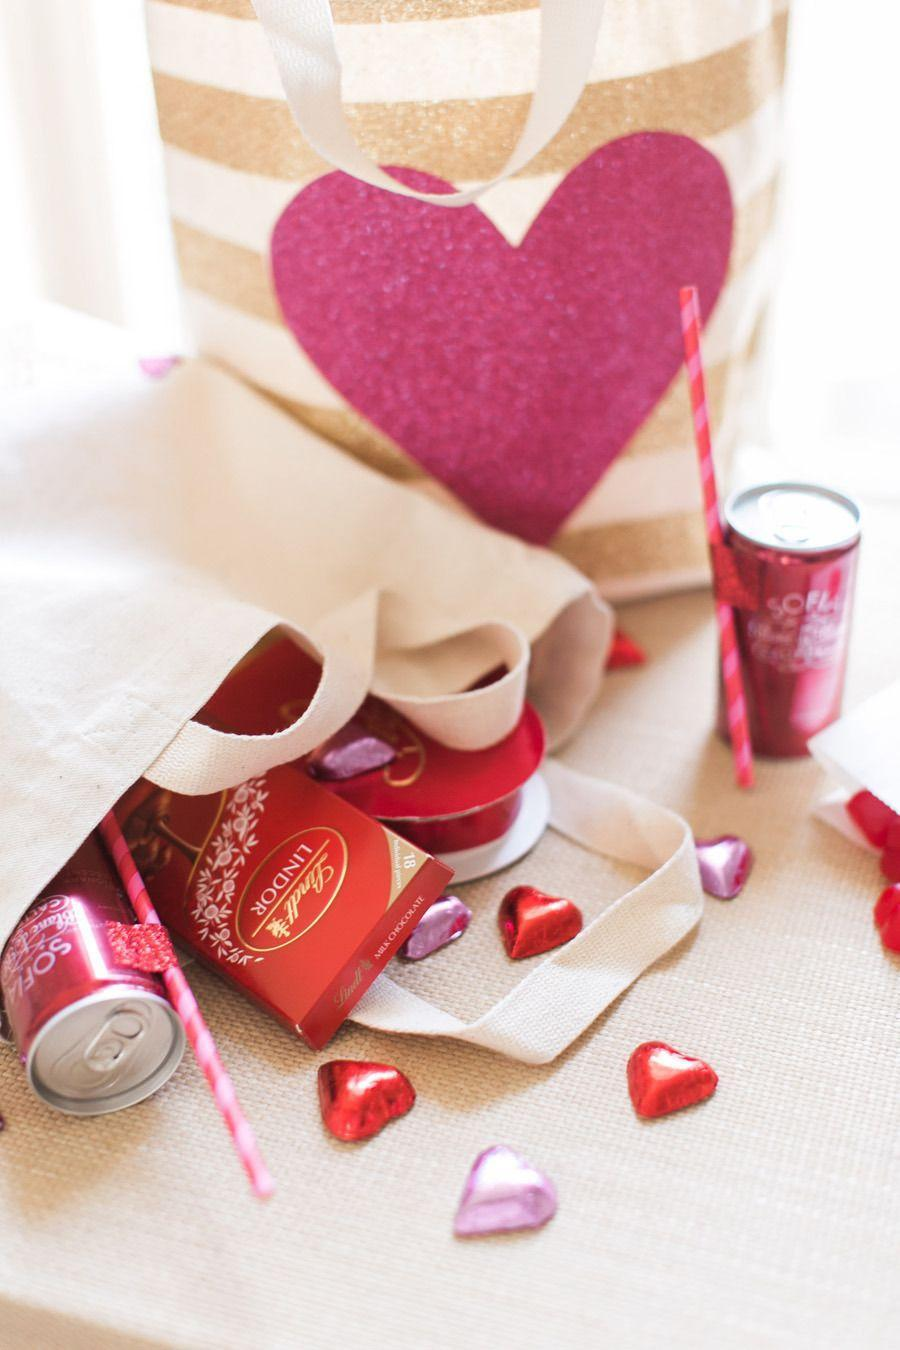 "<p>Celebrating Valentine's Day with a small group? Make adorably on-theme goodie bags, decorated with sparkling hearts and packed with pink-and-red treats. </p><p><em>Via <a href=""https://www.stylemepretty.com/vault/image/2513091"" rel=""nofollow noopener"" target=""_blank"" data-ylk=""slk:Style Me Pretty"" class=""link rapid-noclick-resp"">Style Me Pretty</a> and <a href=""http://rutheileenphotography.com/"" rel=""nofollow noopener"" target=""_blank"" data-ylk=""slk:Ruth Eileen Photography"" class=""link rapid-noclick-resp"">Ruth Eileen Photography</a></em></p><p><a class=""link rapid-noclick-resp"" href=""https://www.target.com/p/2ct-valentine-39-s-cub-bag-stripes-solid-red-spritz-8482/-/A-80172884#lnk=sametab"" rel=""nofollow noopener"" target=""_blank"" data-ylk=""slk:GET THE LOOK"">GET THE LOOK</a><em><br>2ct Valentine's Bags, Target, $3</em></p>"